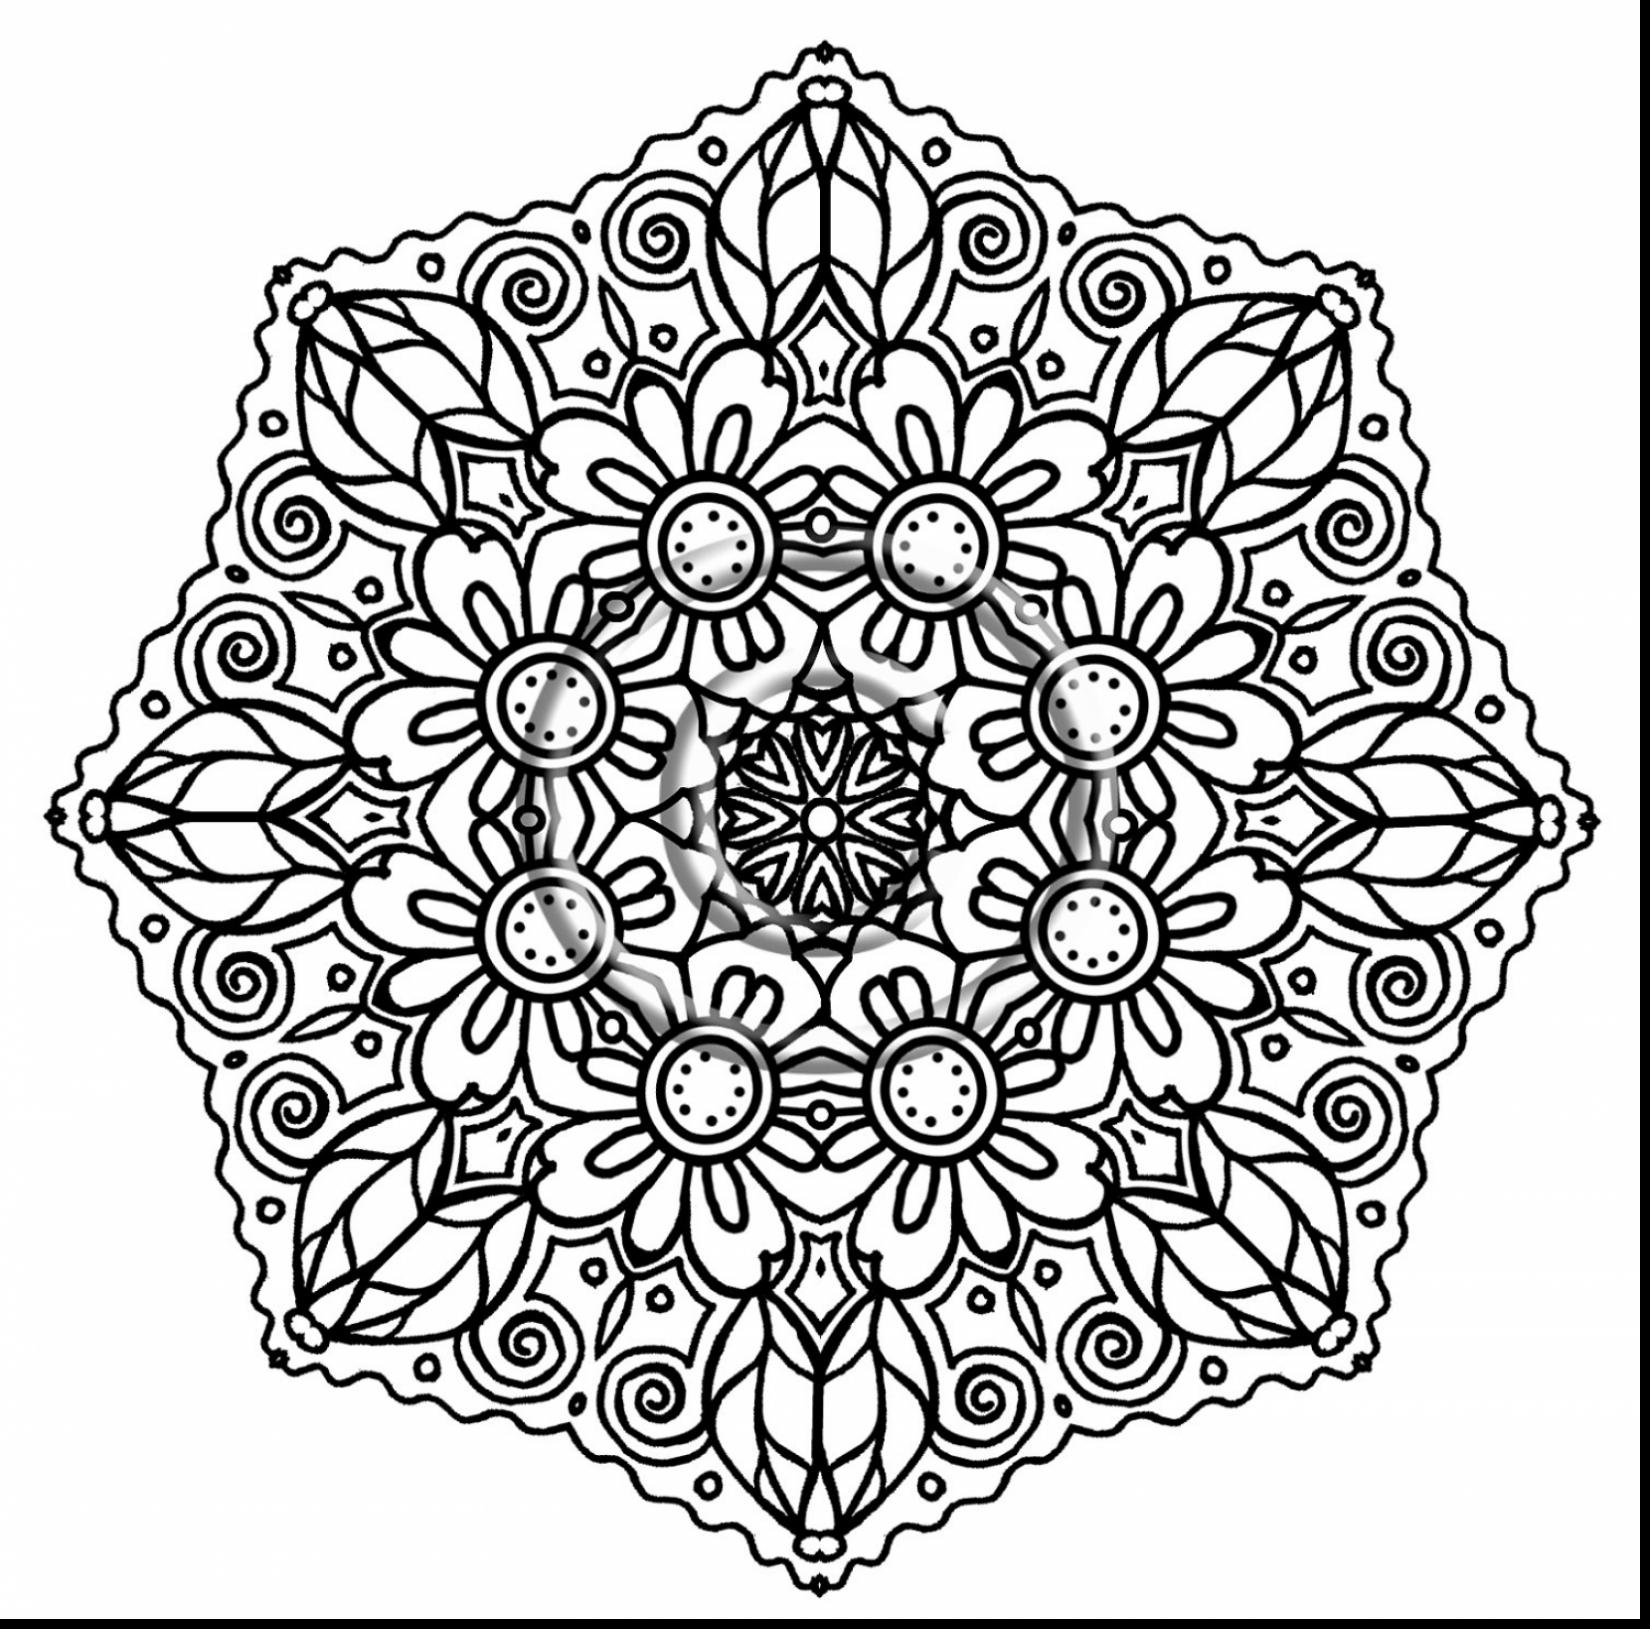 Mandala Coloring Pages For Adults Printable At Getdrawings